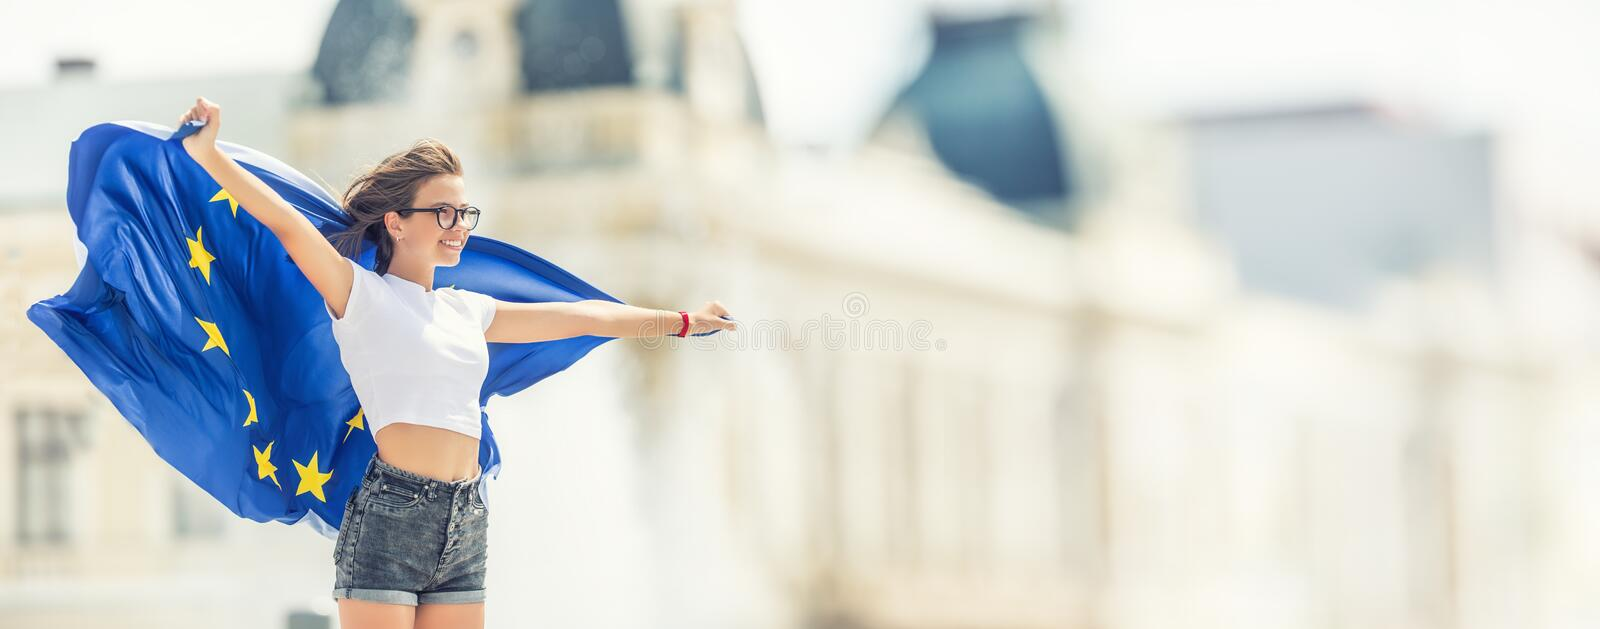 Cute happy young girl with the flag of the European Union in front of a historic building somewhere in europe royalty free stock photo